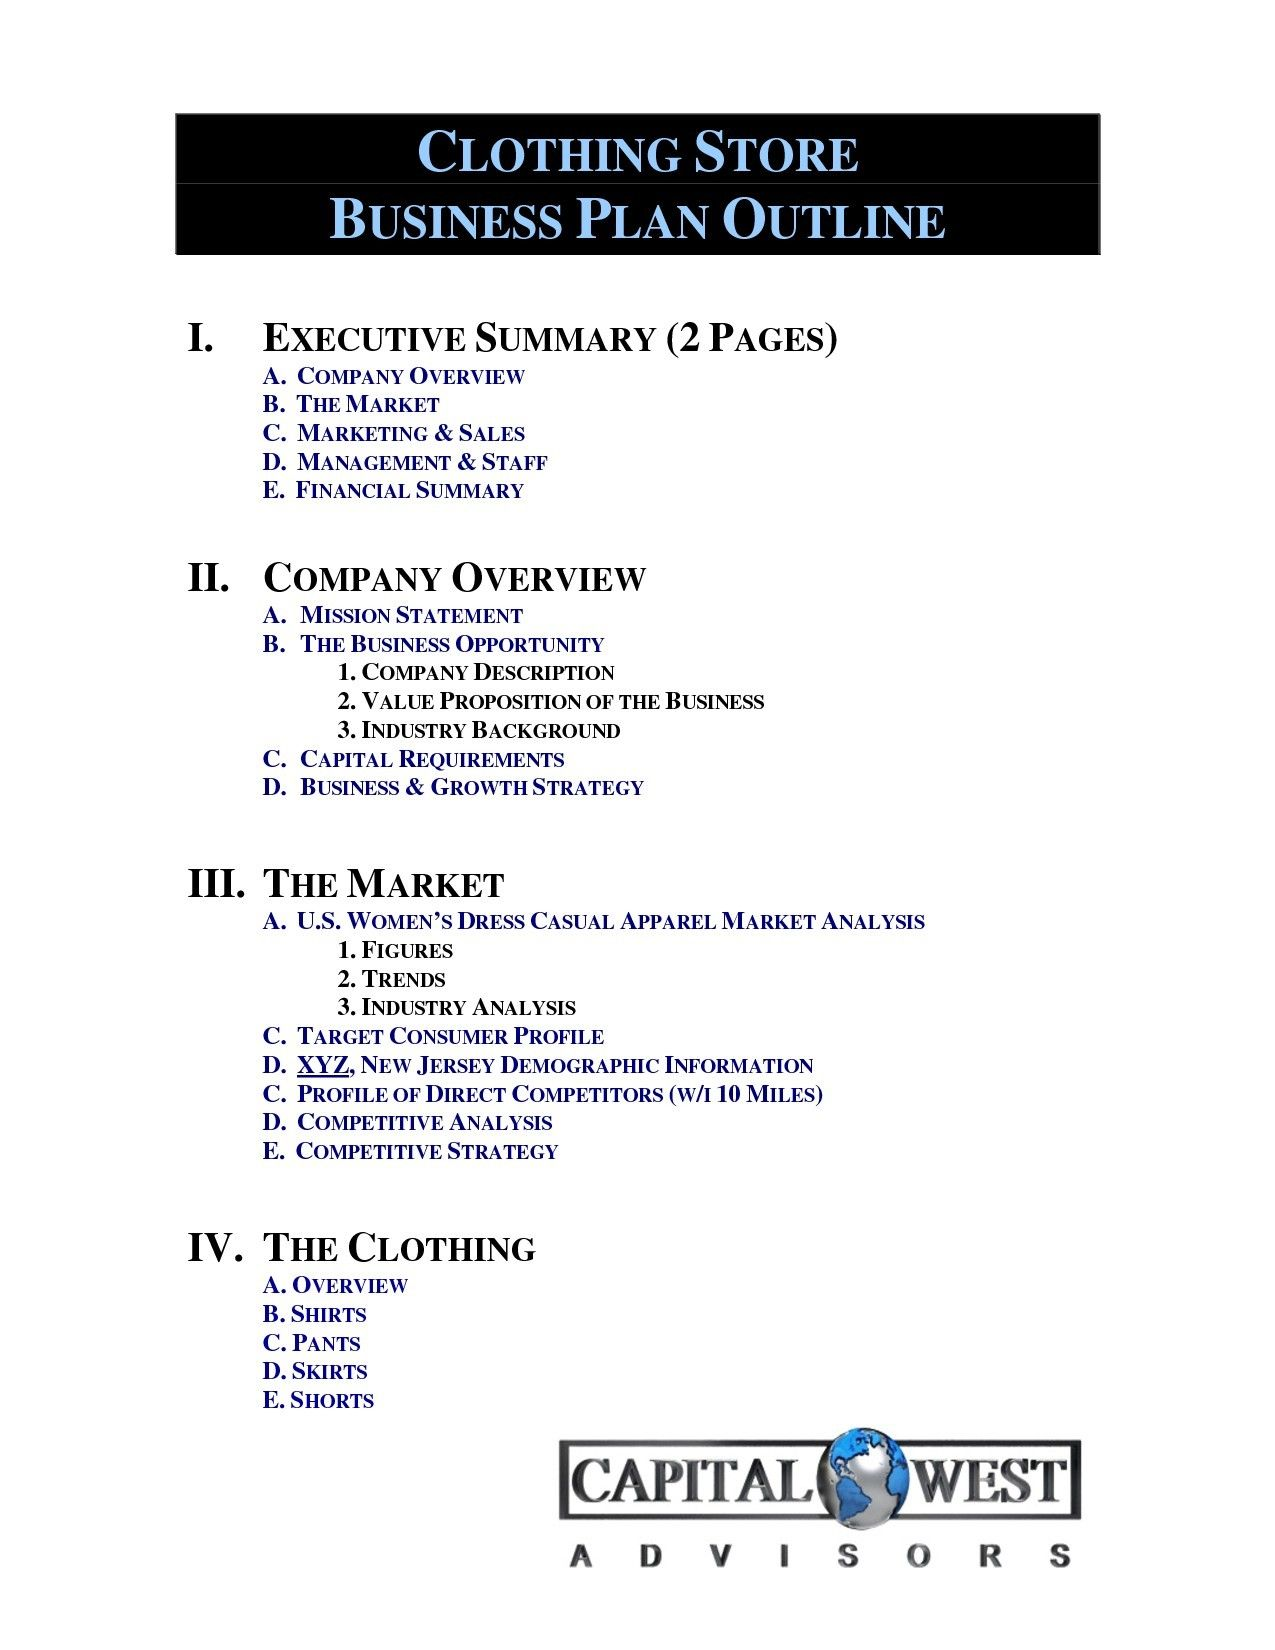 New Clothing Line Business Plan Template Business plan